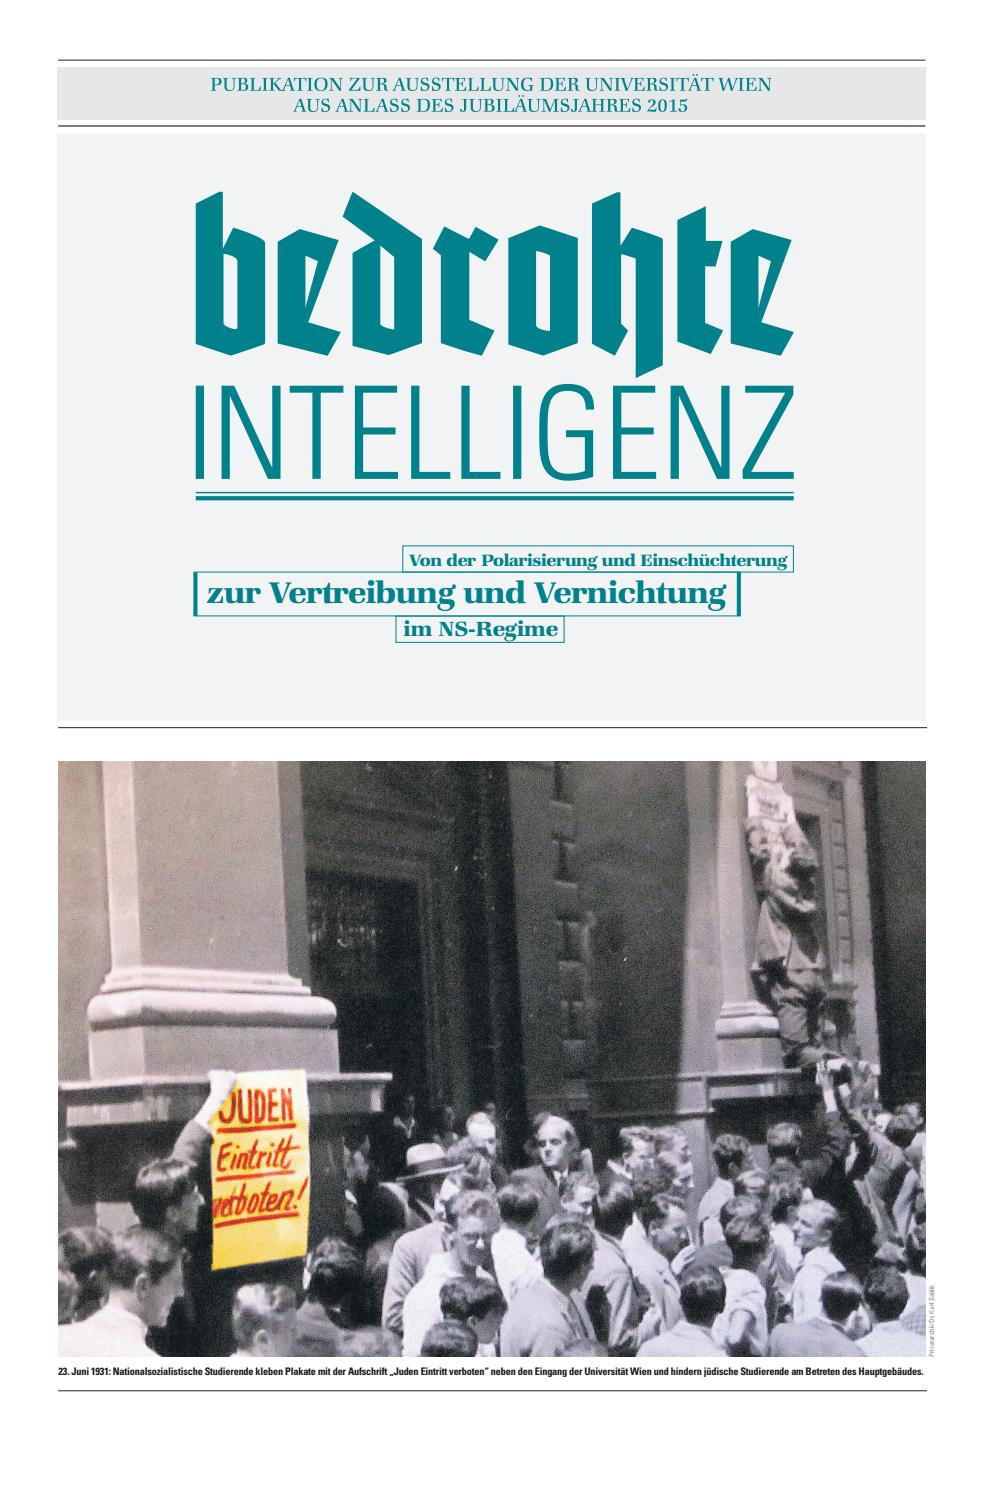 Bedrohte Intelligenz – Newspaper zur Ausstellung by kadadesign - issuu